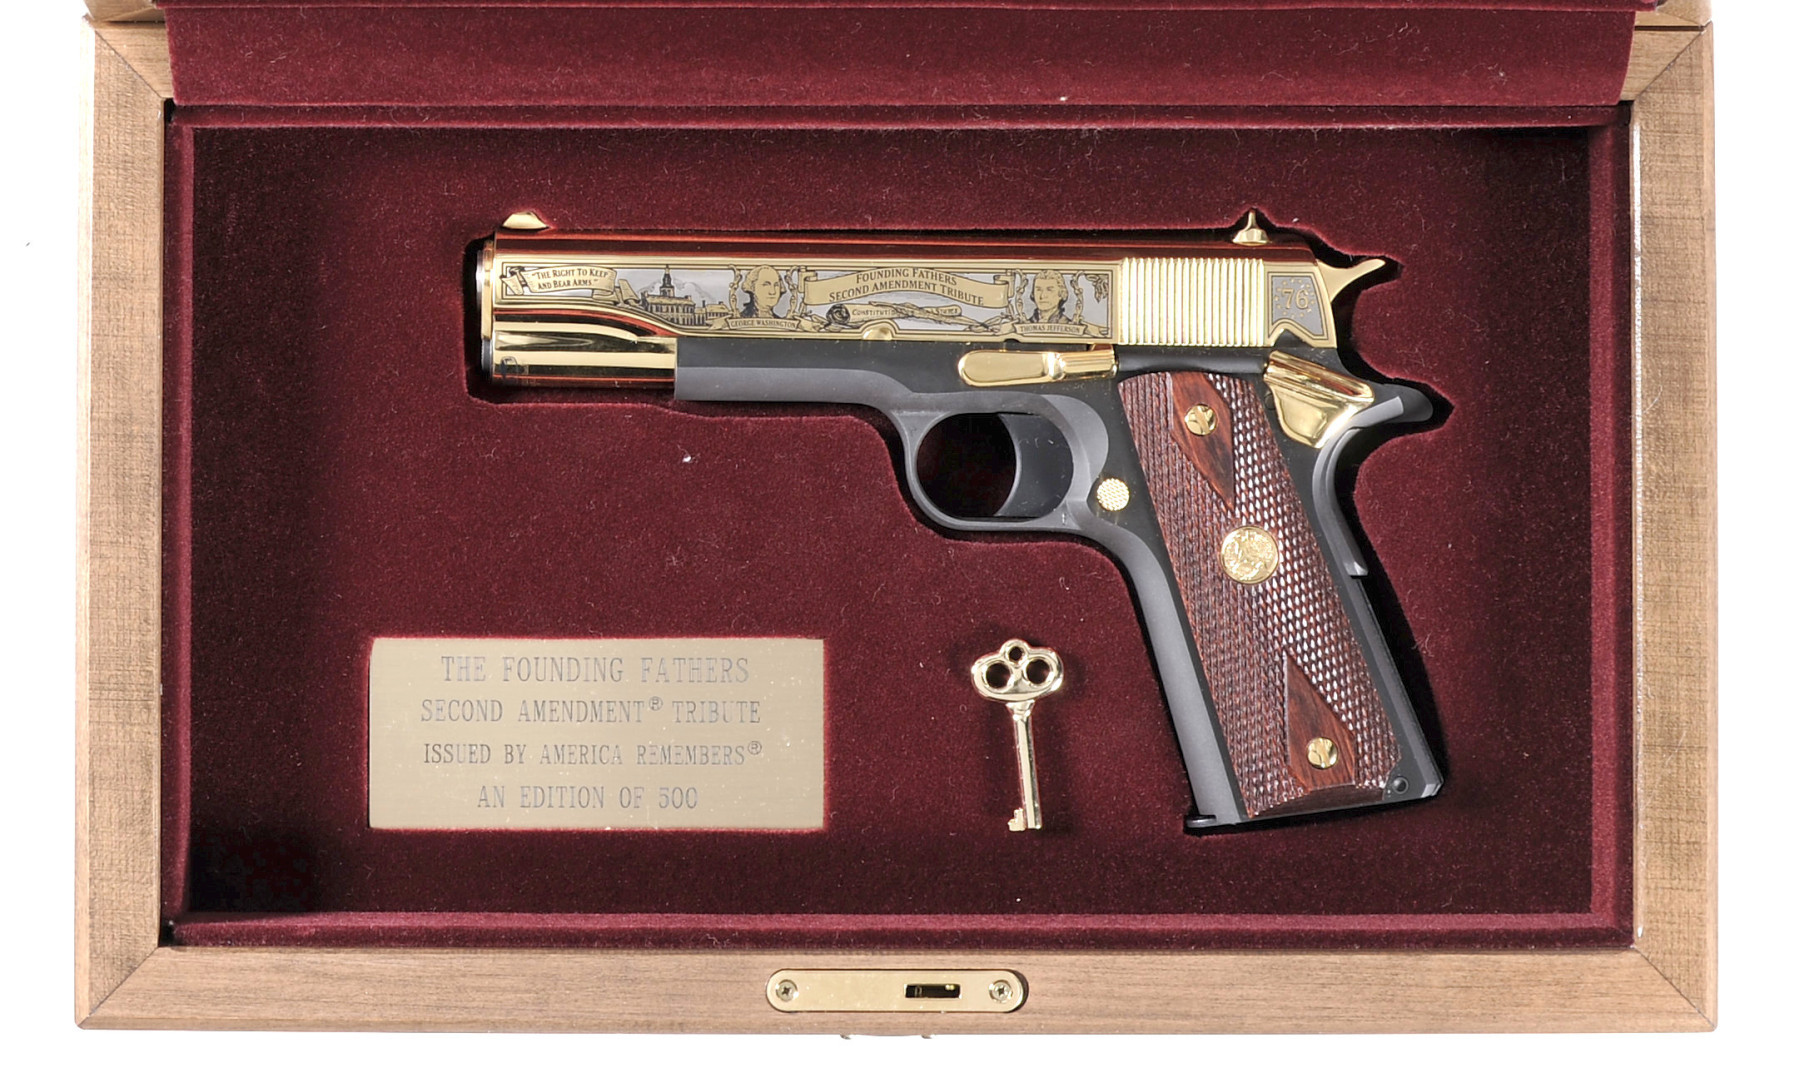 "Colt 1911 ""Founding Fathers Second Amendment Tribute"" pistol"